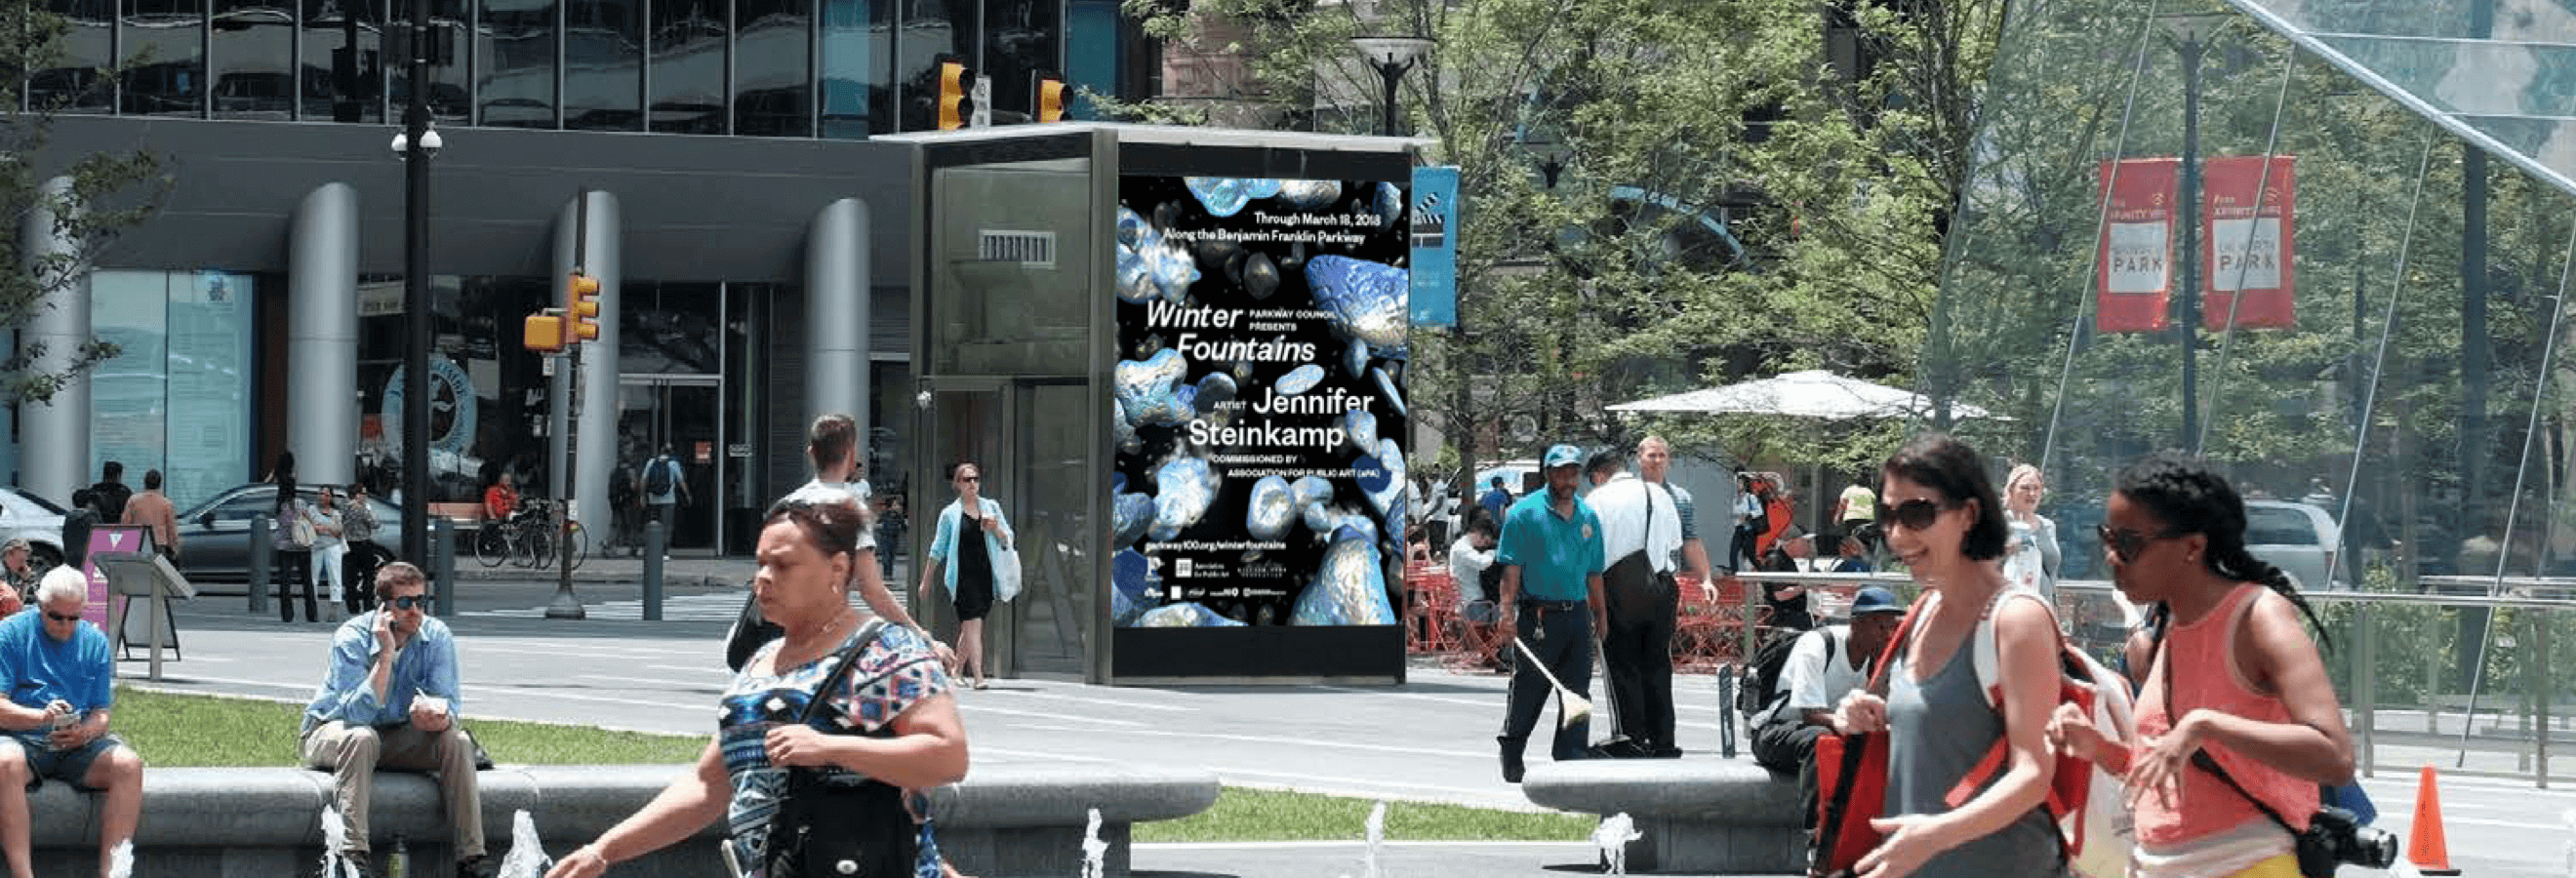 digital display in Dilworth Park